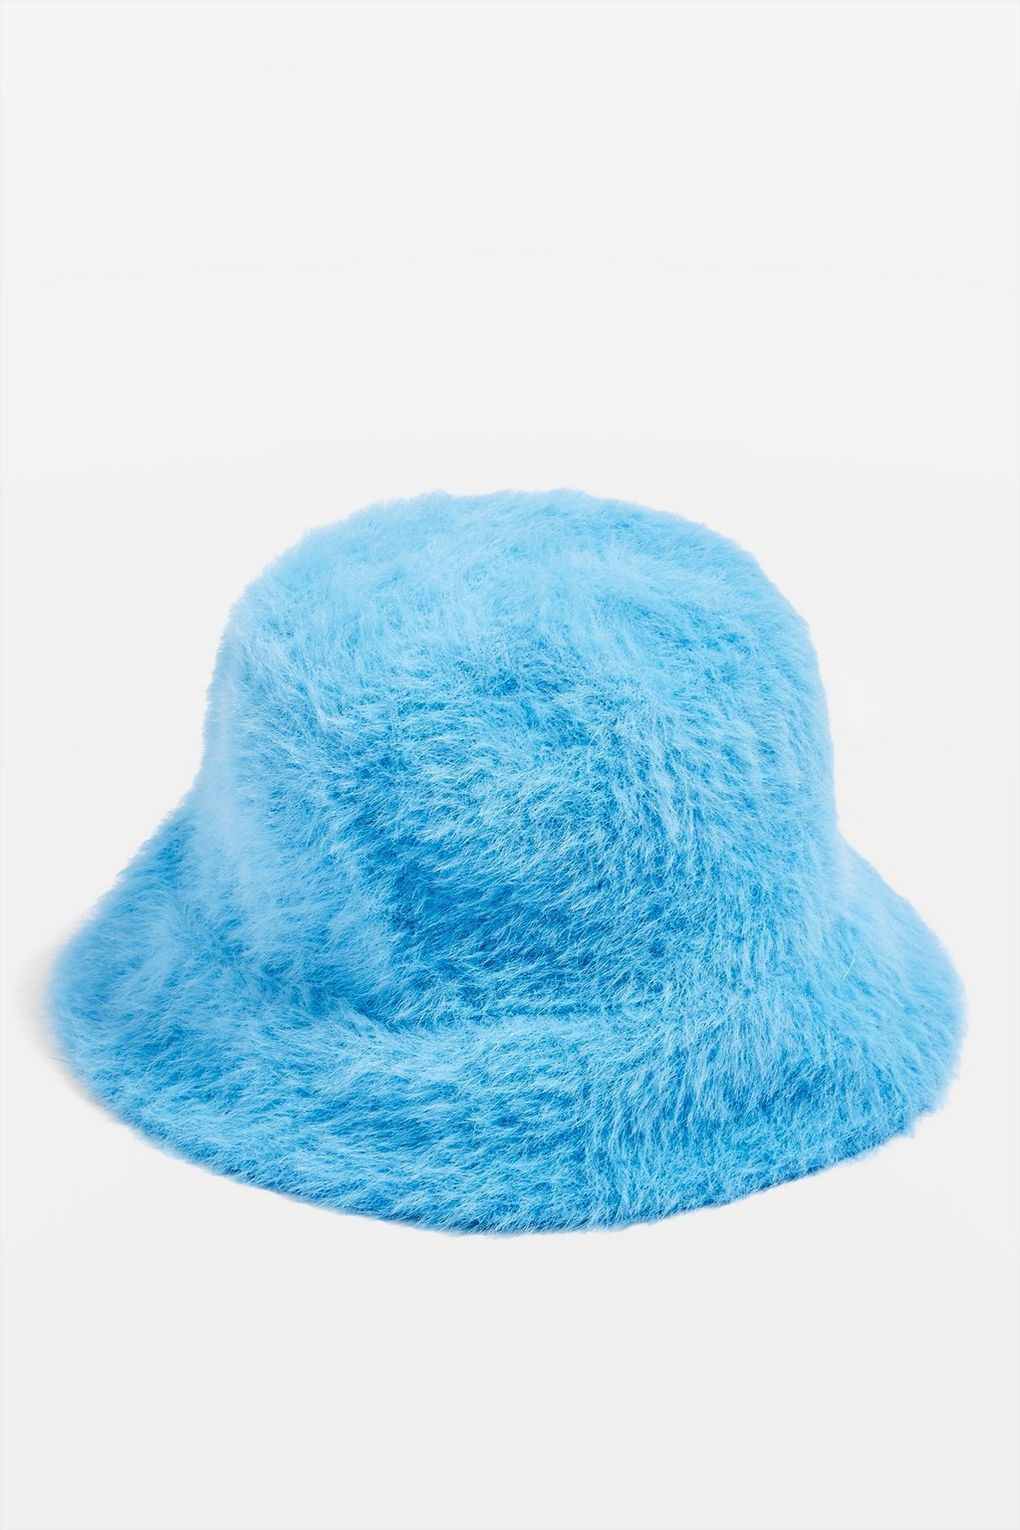 fccc4b82 Fluffy Bucket Hat | H A T S | Hats, Bucket hat, Clothes